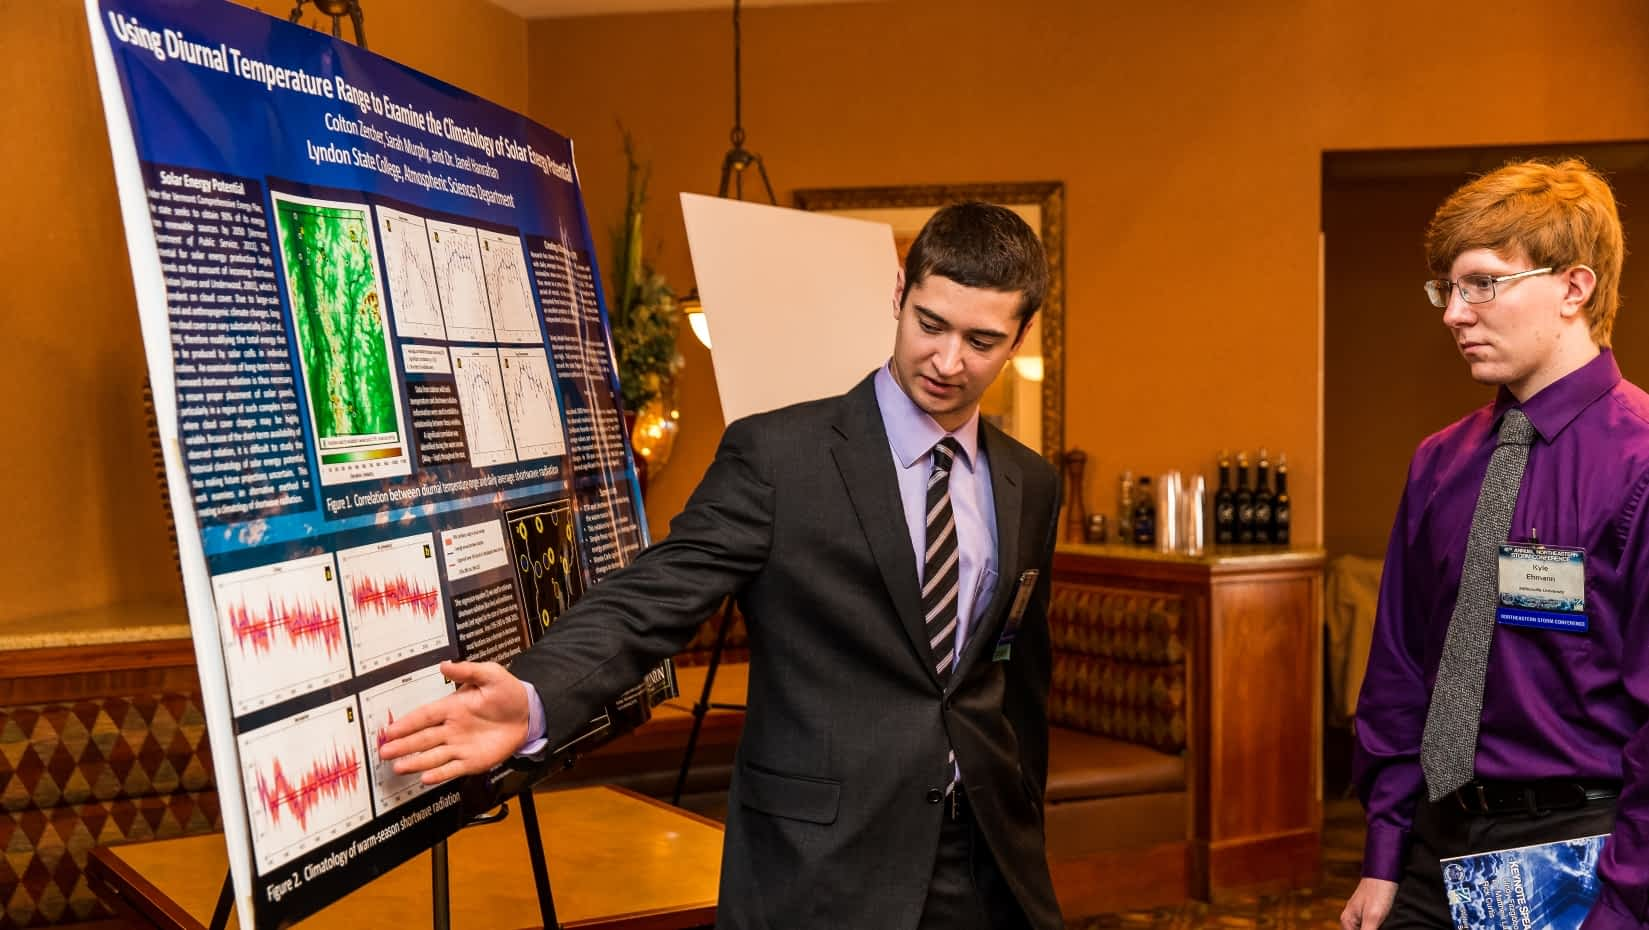 Colton Zercher explains his research at the 2016 Northeastern Storm Conference